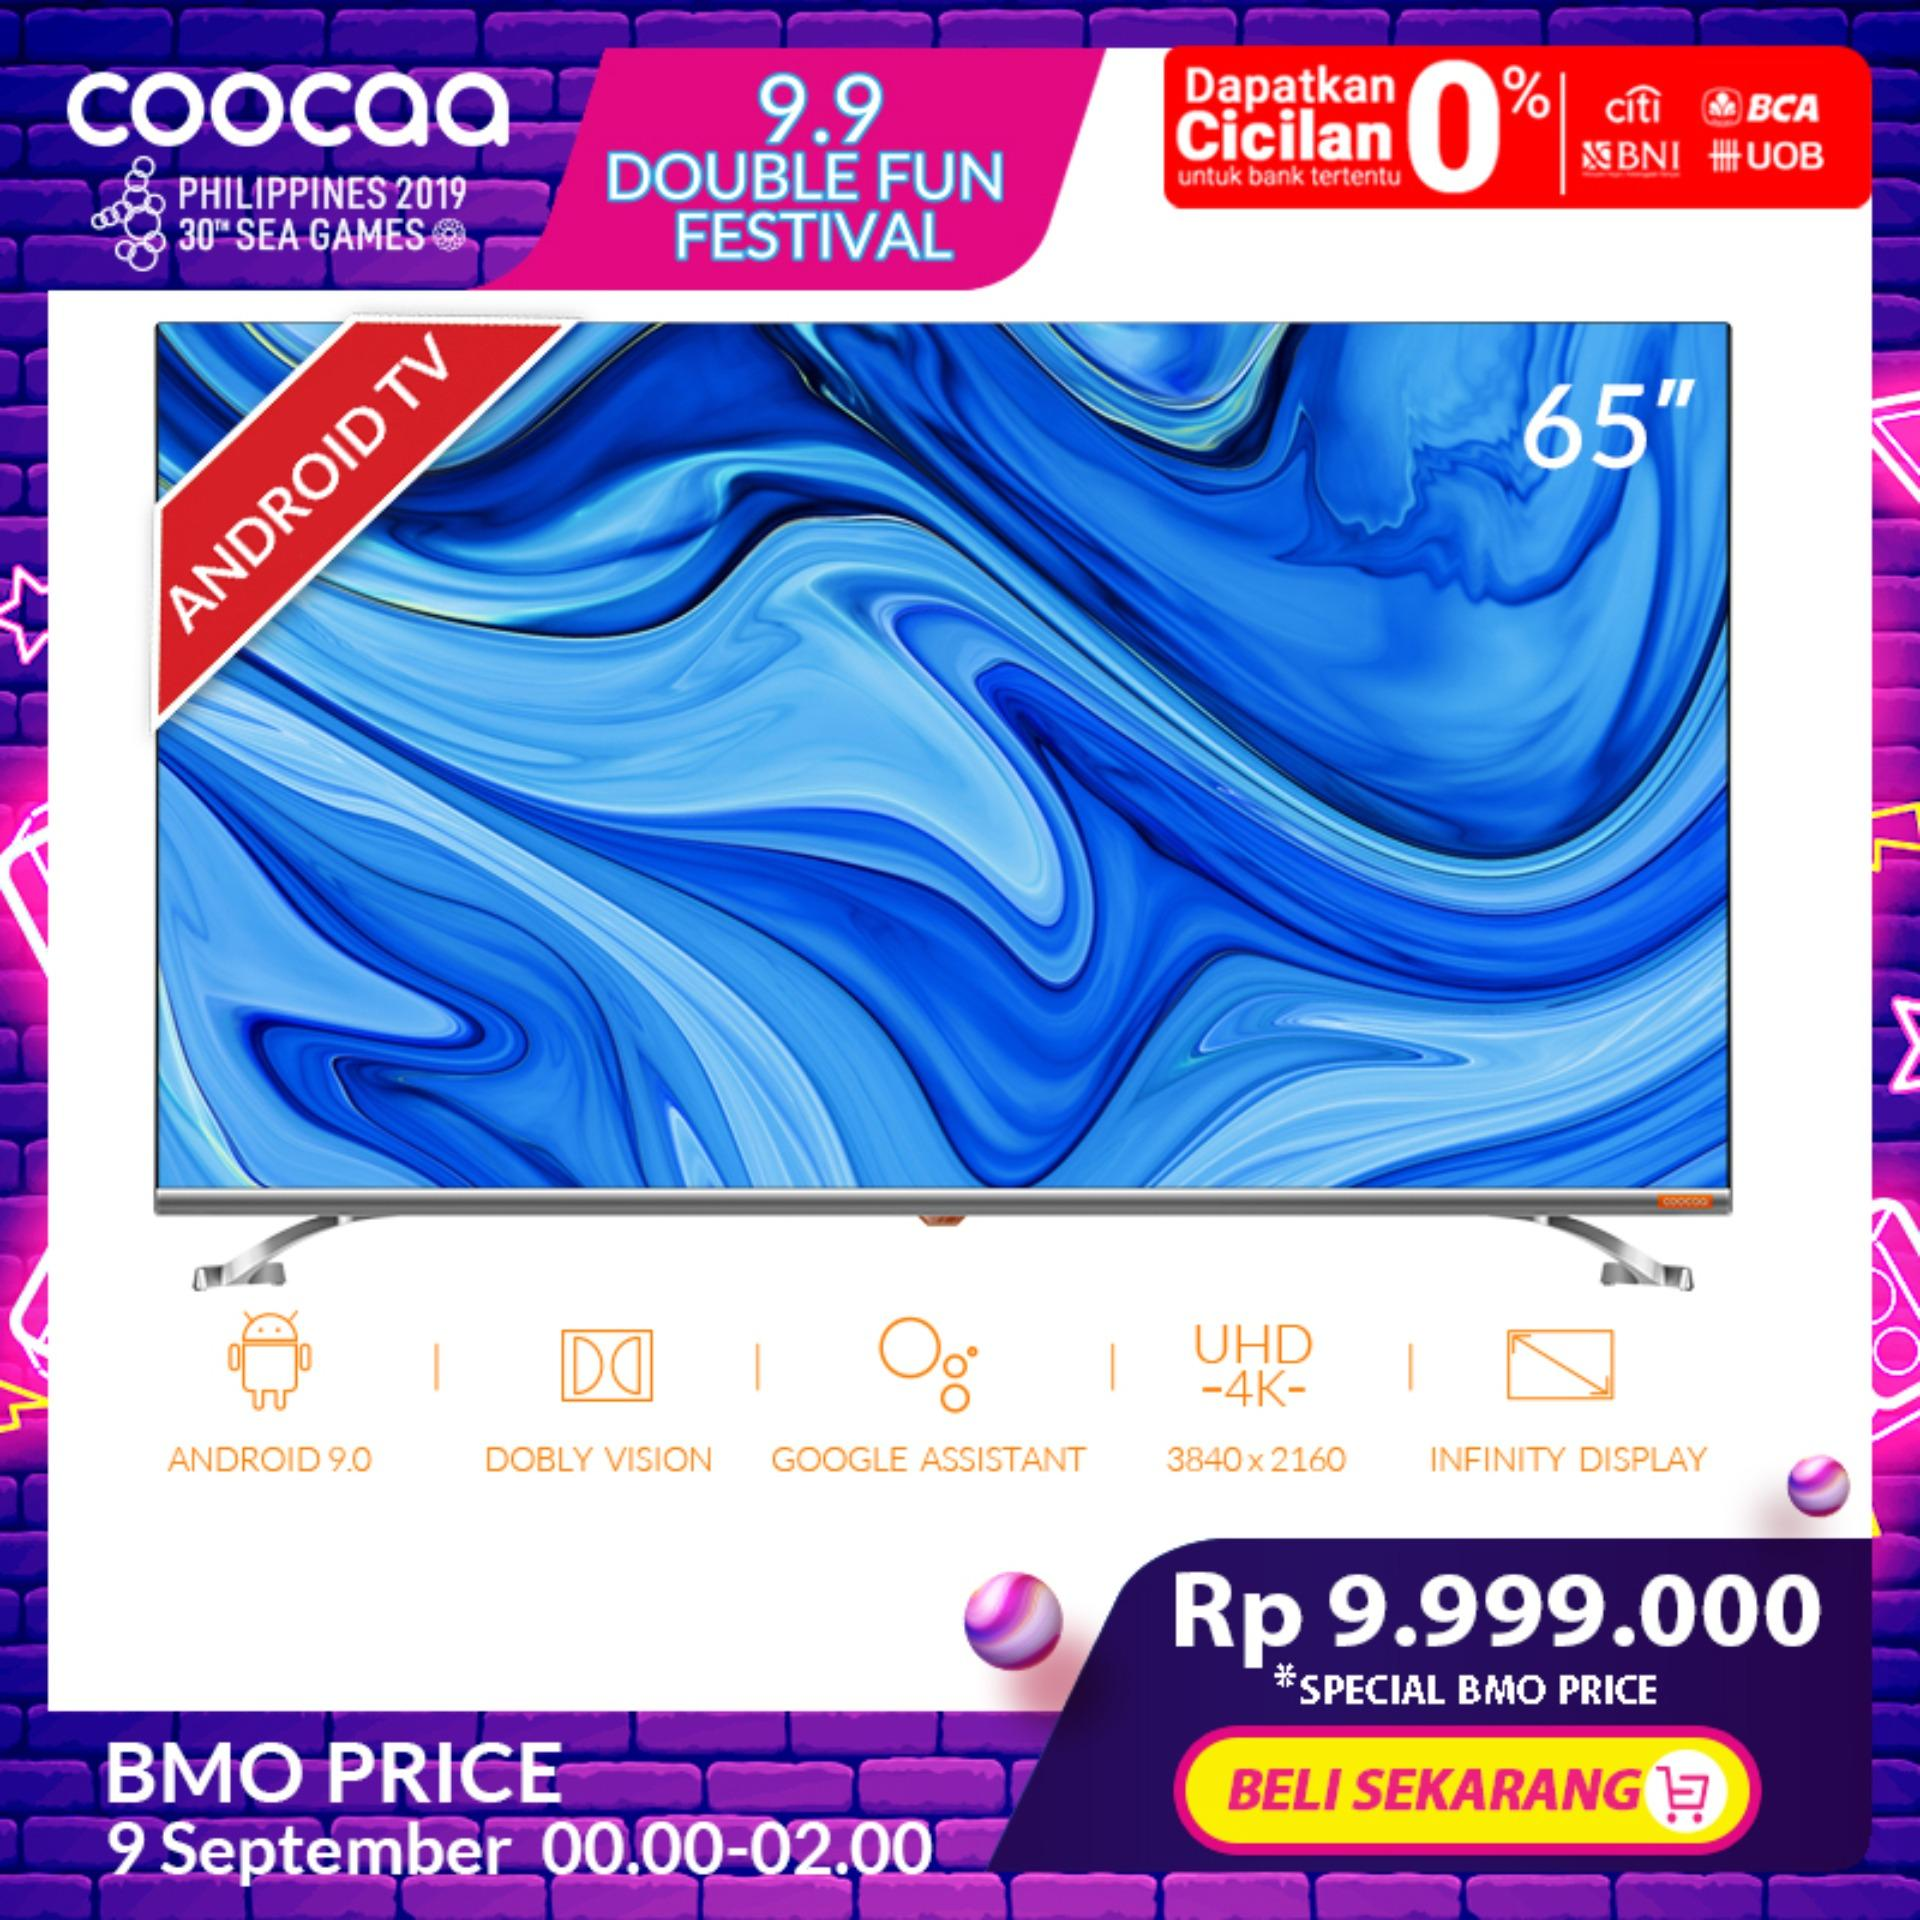 COOCAA 65 inch 4K Android 9.0 Smart LED TV- Infinity View- Dolby Vision- Ultra HD- Silm-Wifi (Model 65S6G)